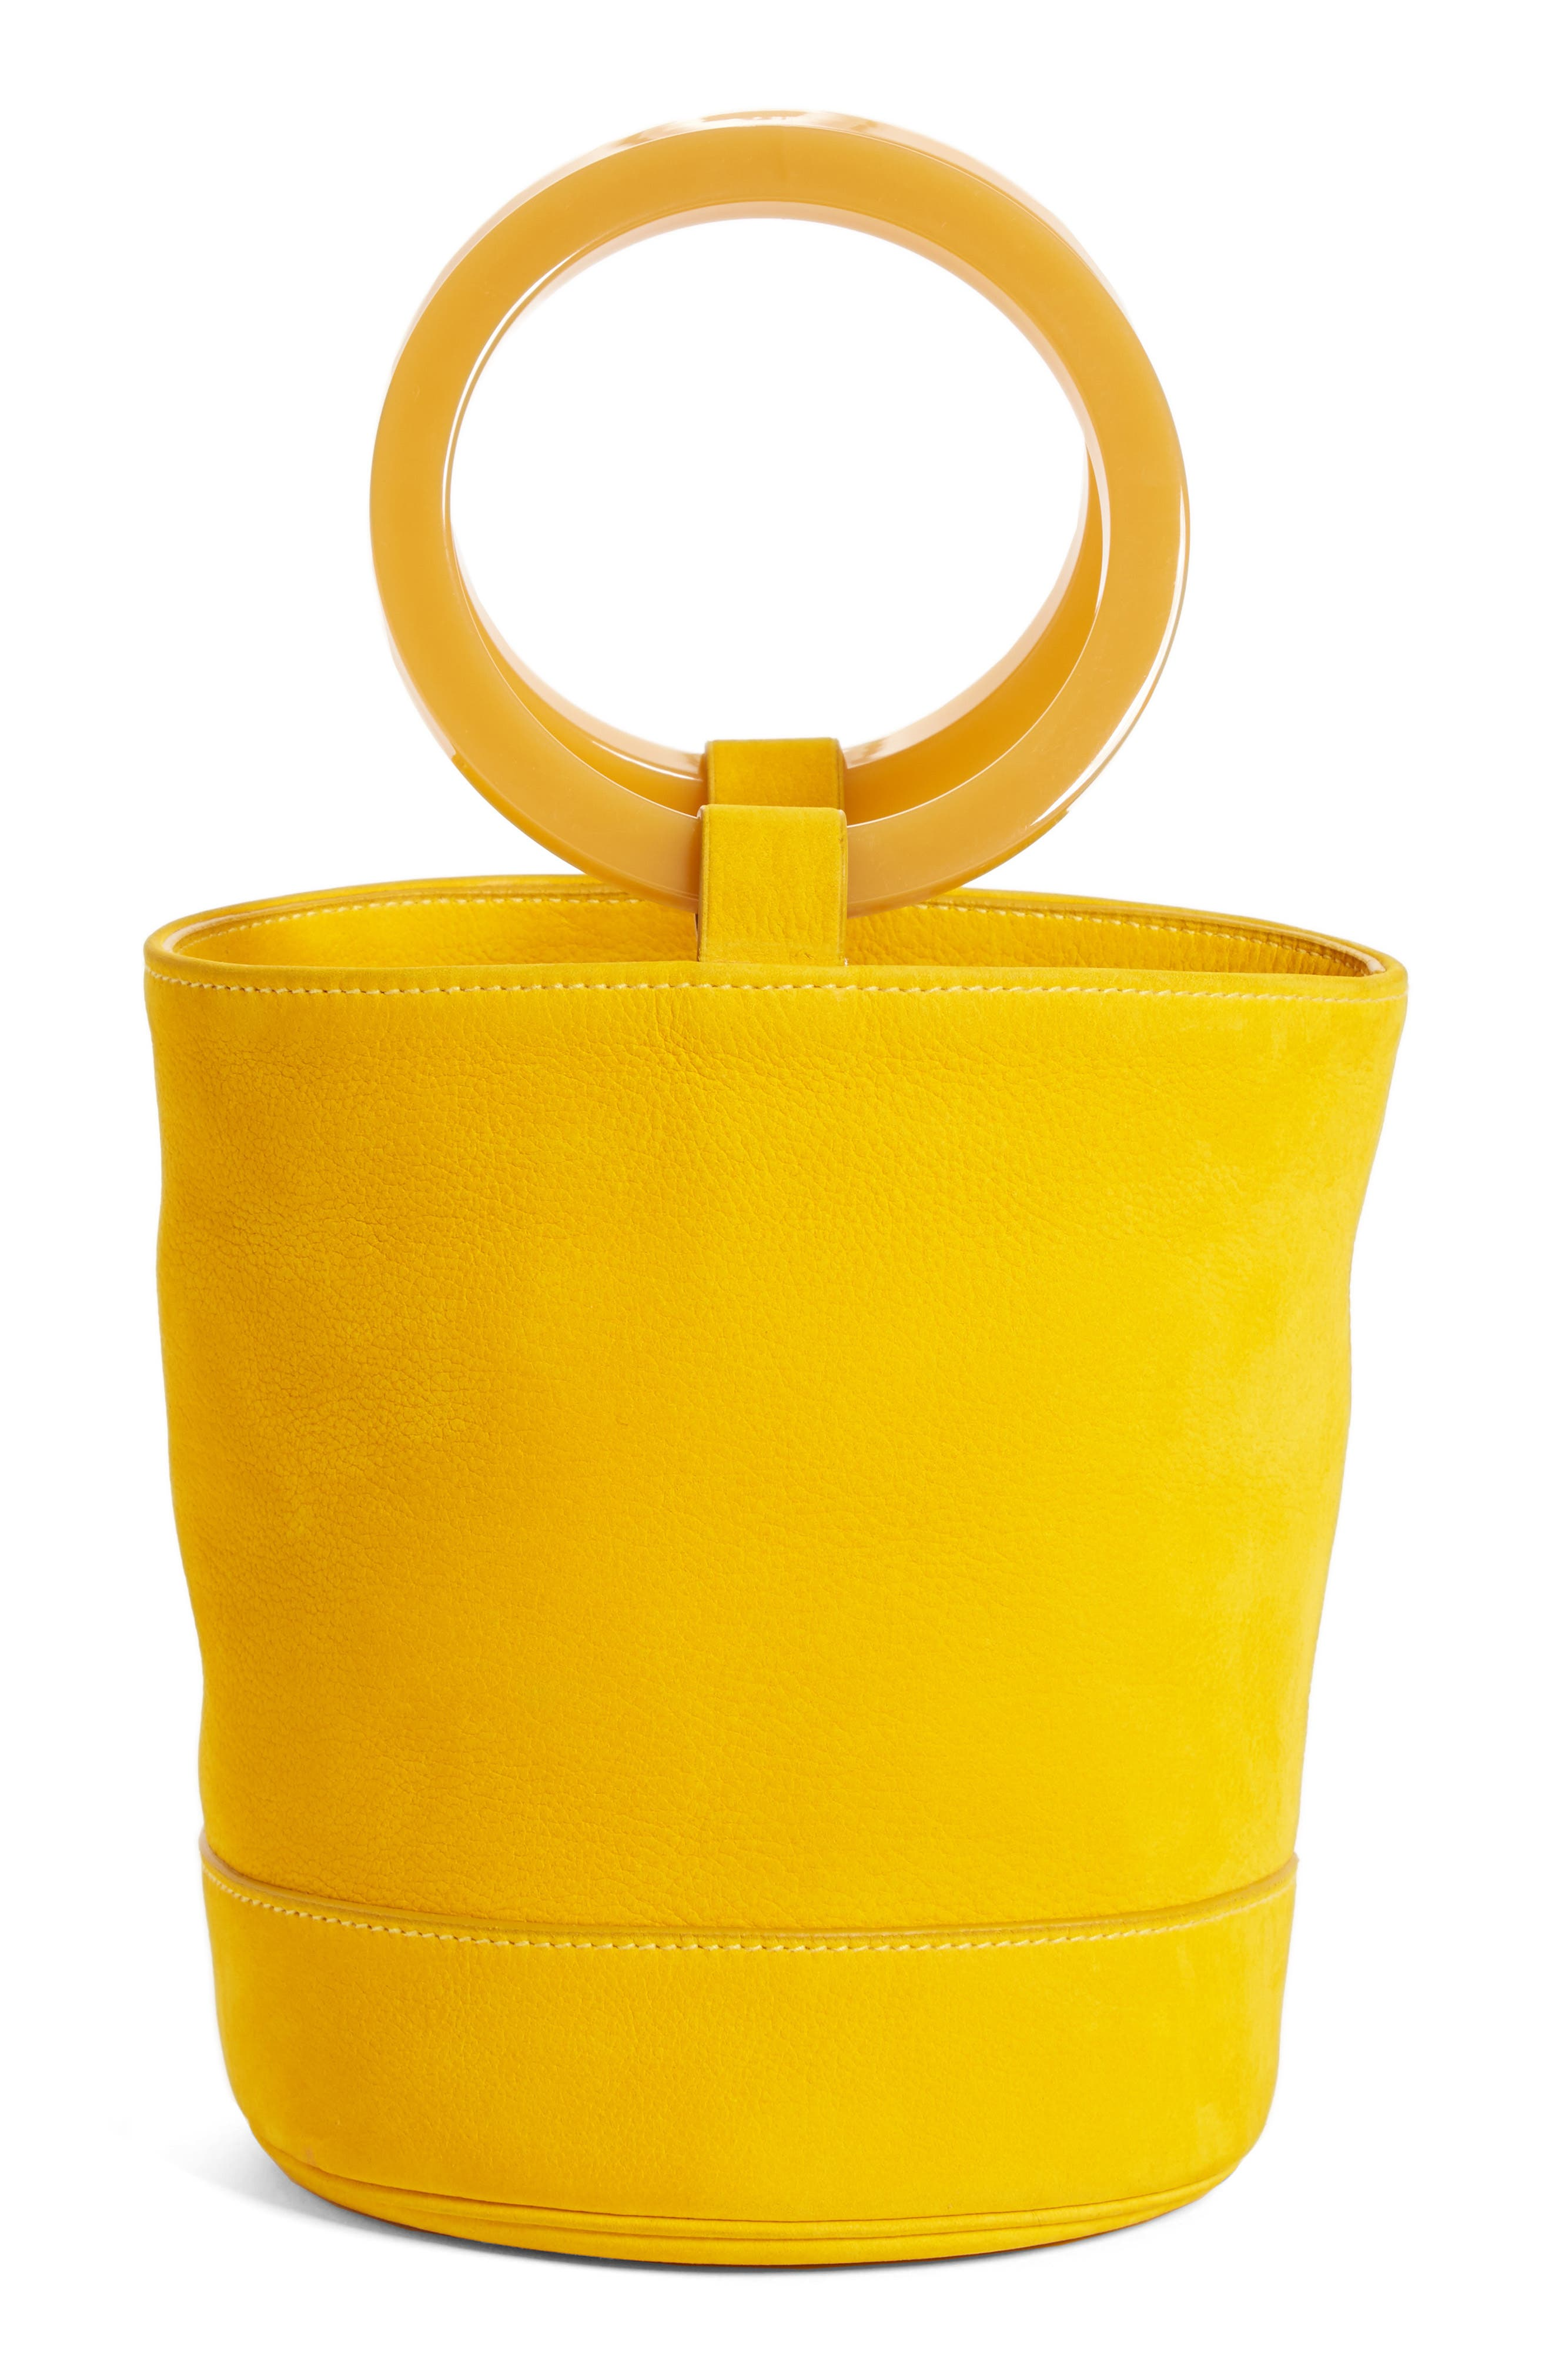 Bonsai Nubuck Bucket Bag,                         Main,                         color, Maize With Acetate Ring